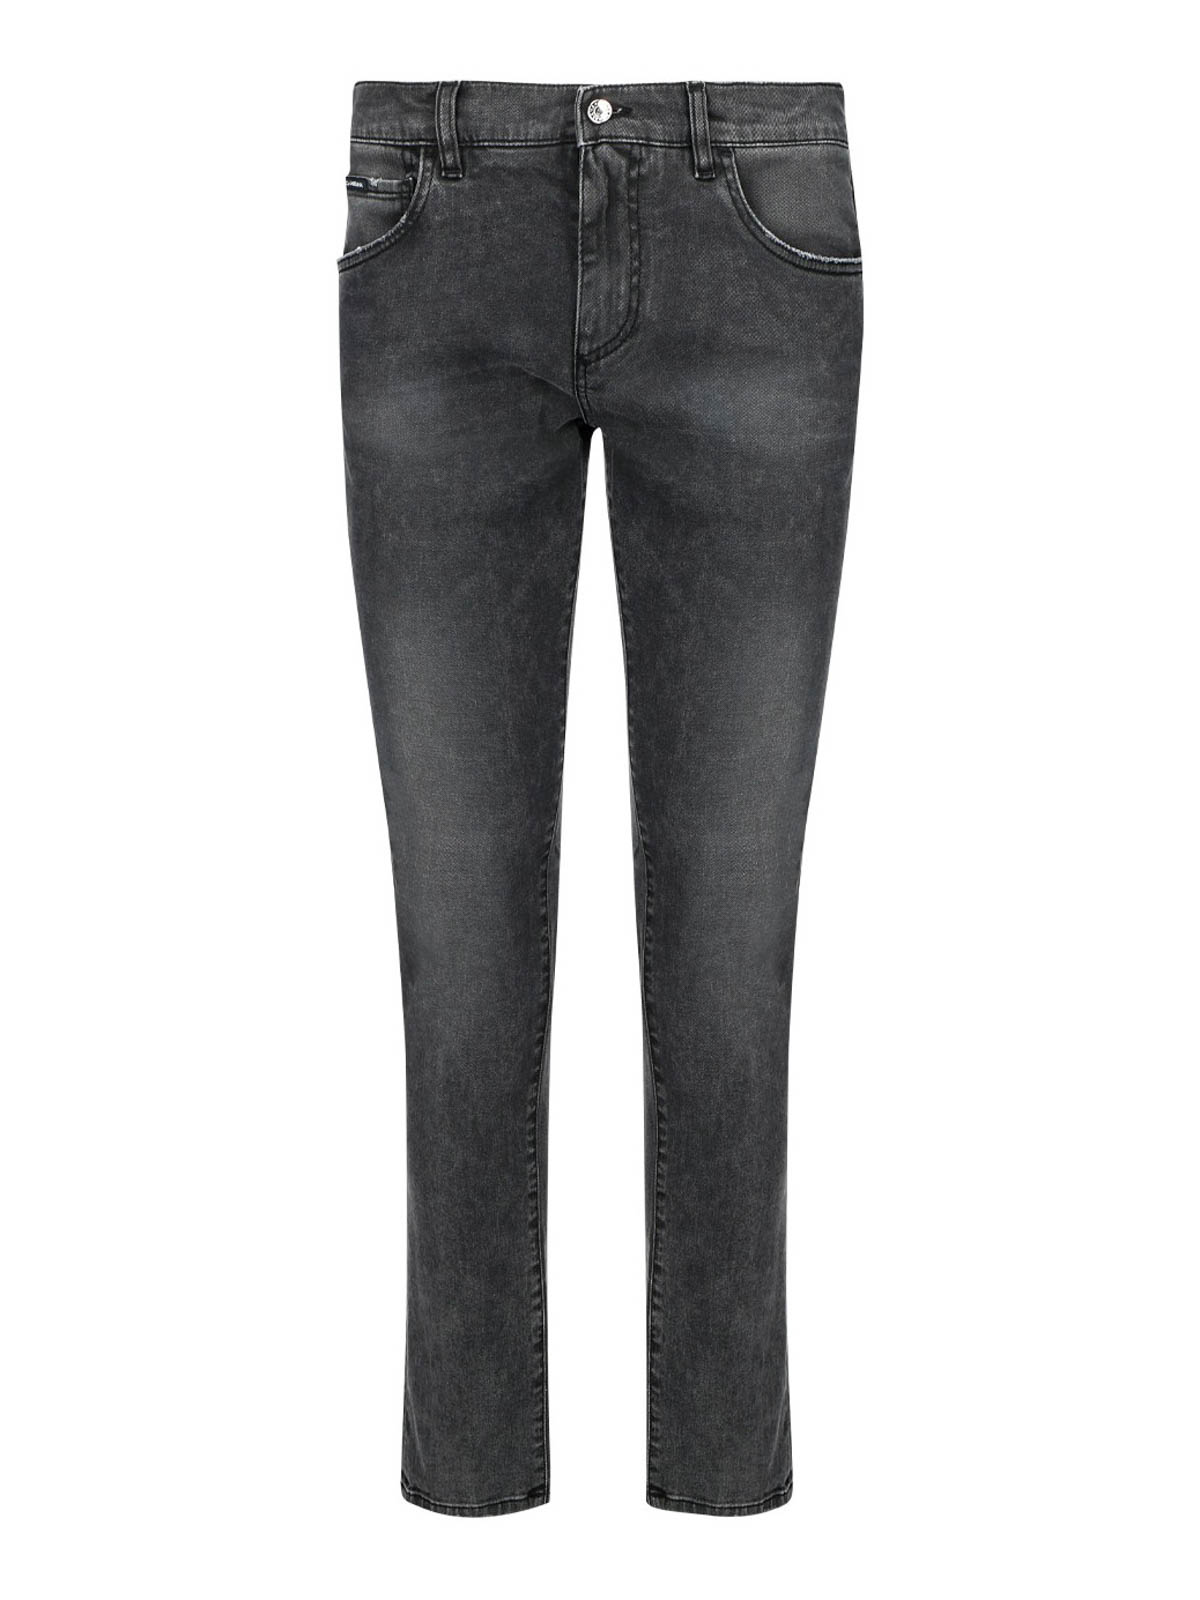 Dolce & Gabbana FADED DENIM FIVE POCKETS JEANS